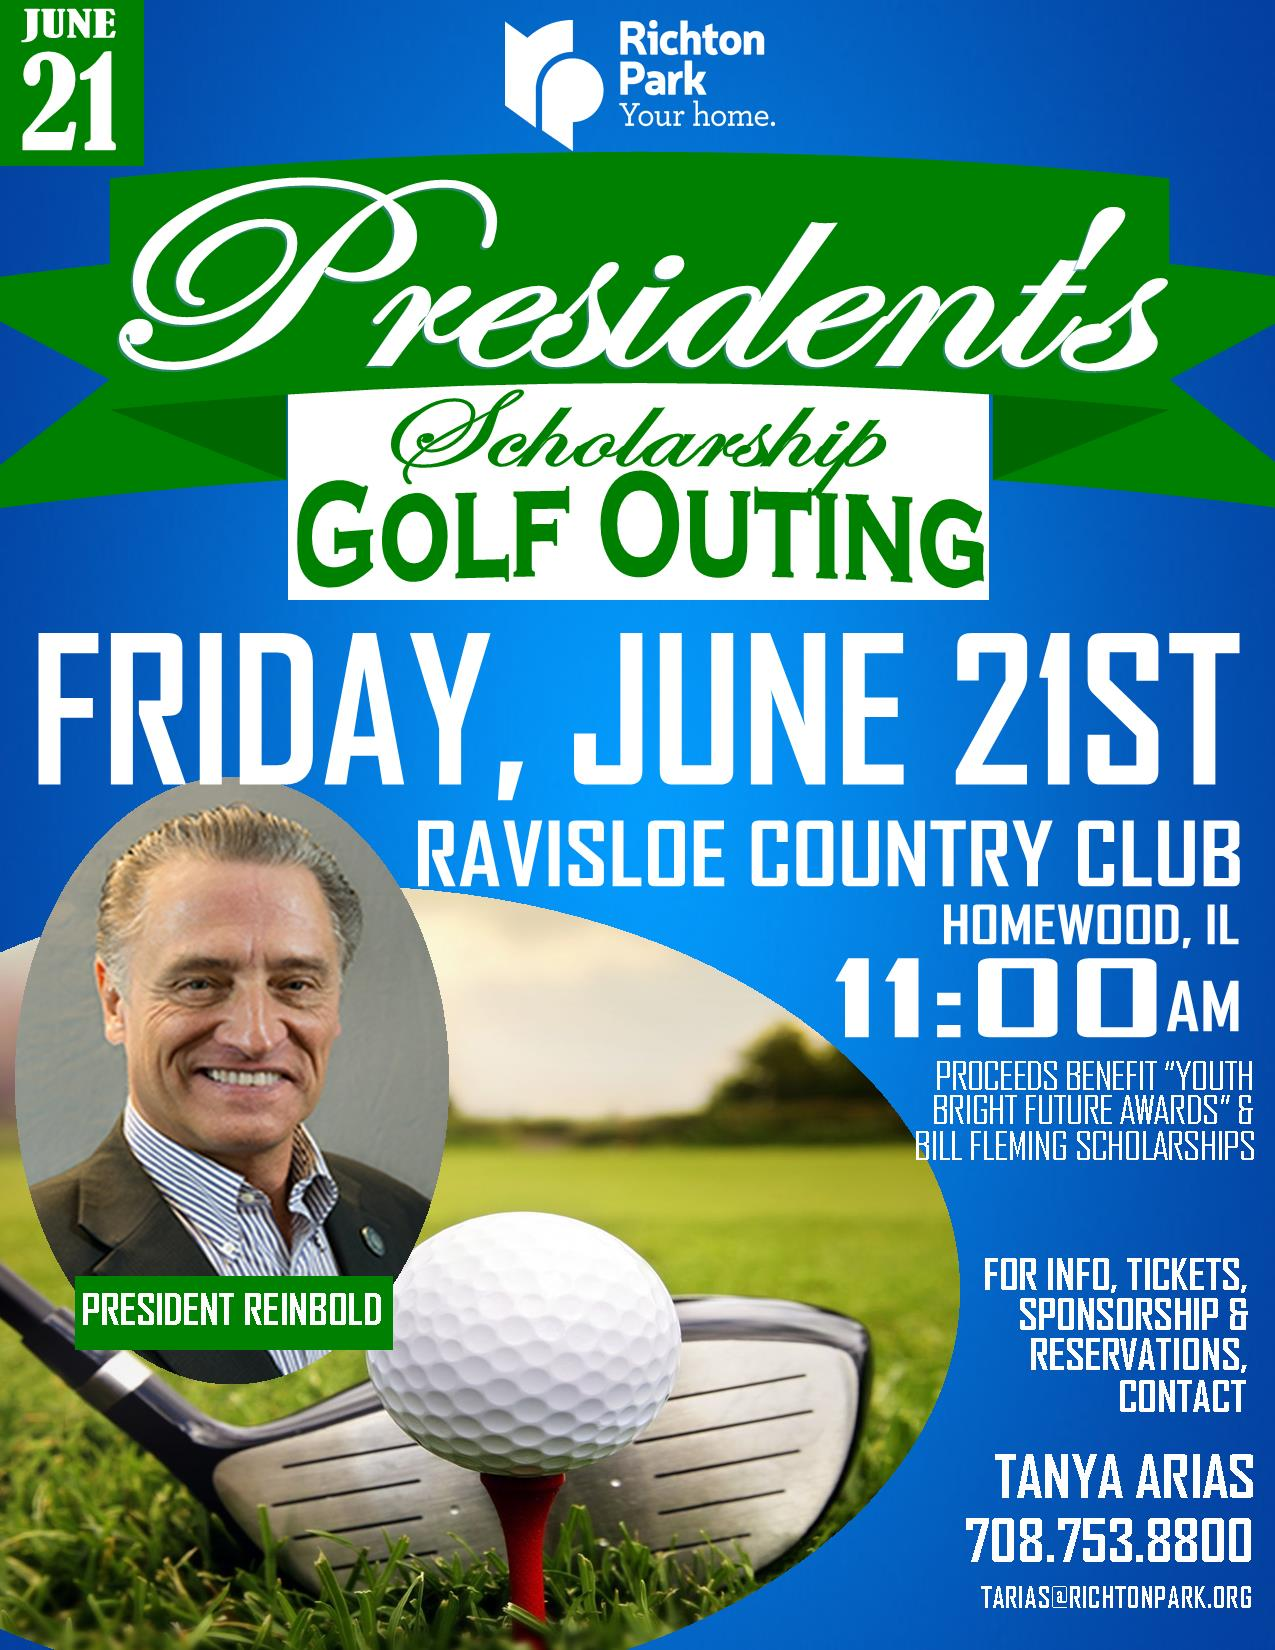 2019 Presidents Scholarship Golf Outing